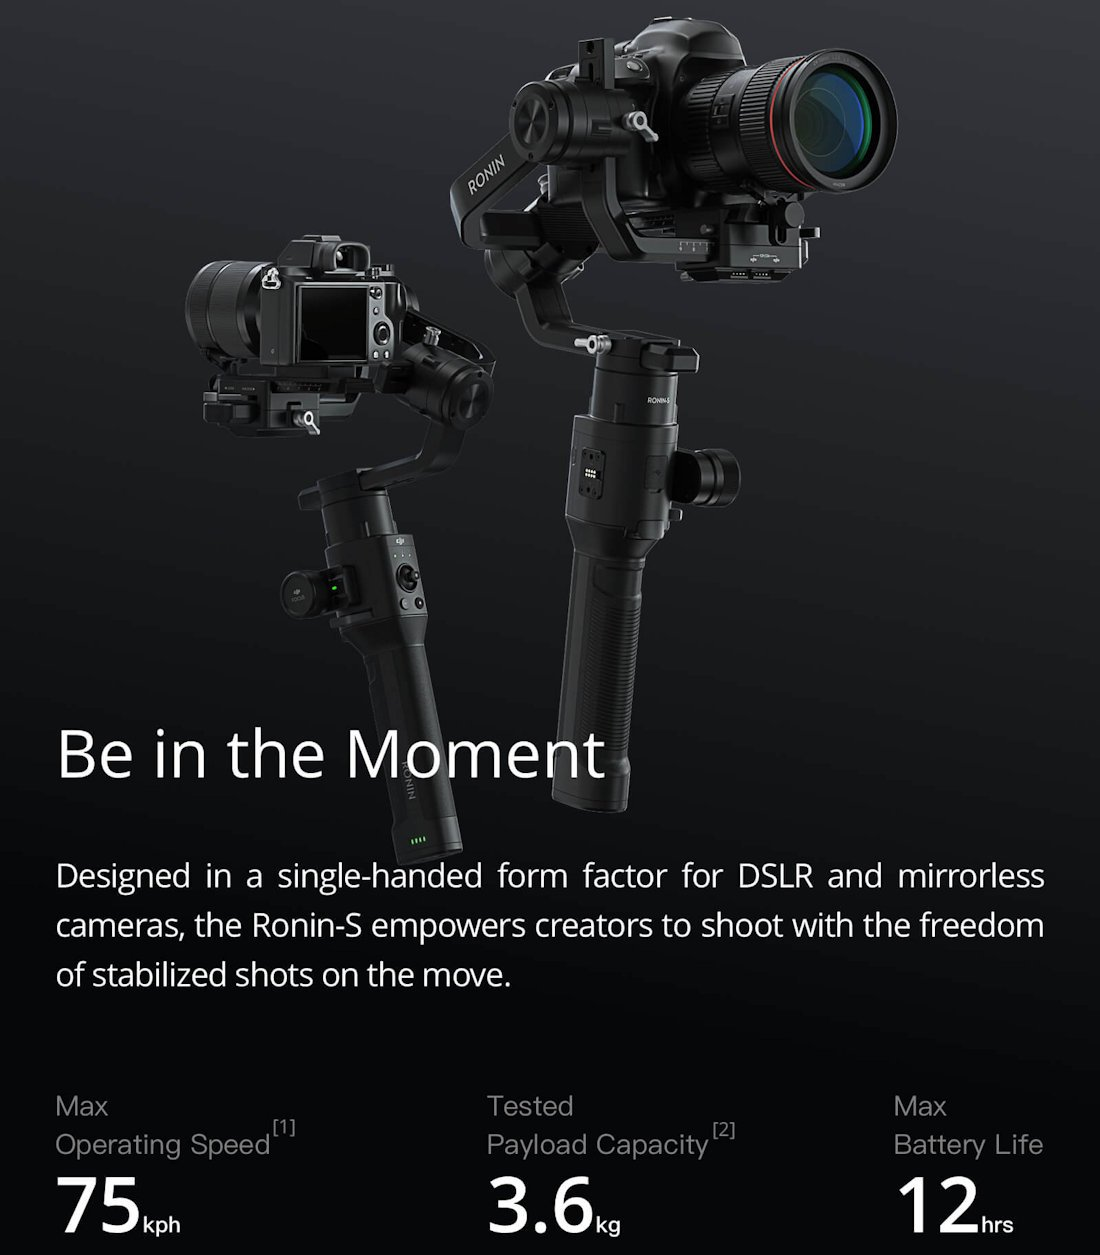 https://shashinki.com/shop/images/DJI-RONIN-S-001.jpg